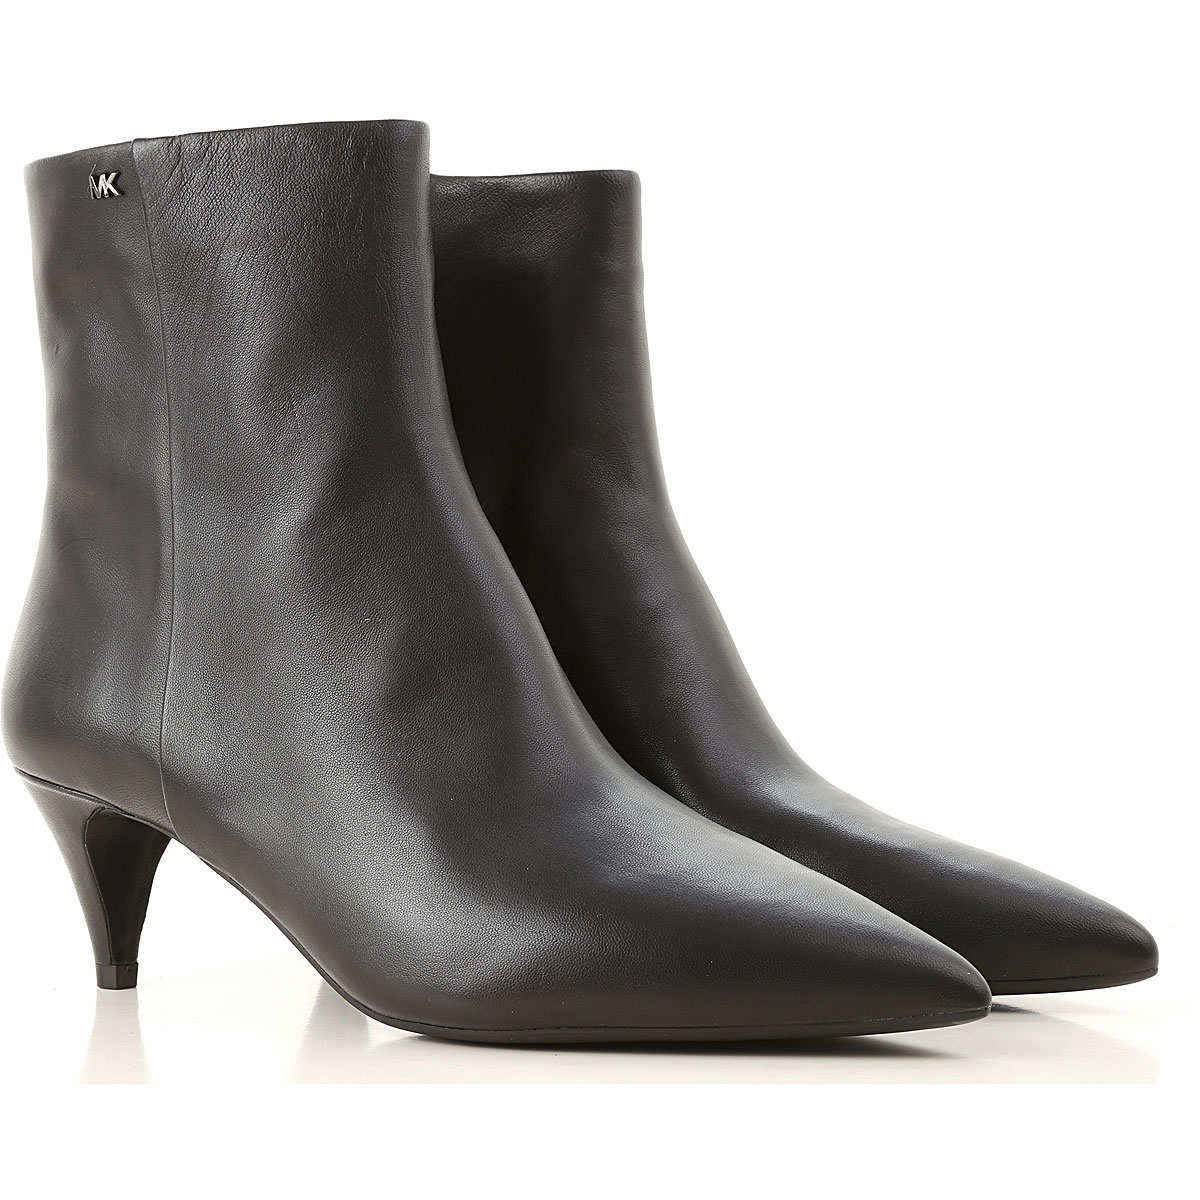 Michael Kors Boots for Women, Booties On Sale in Outlet, Black, Leather, 2019, 6 9